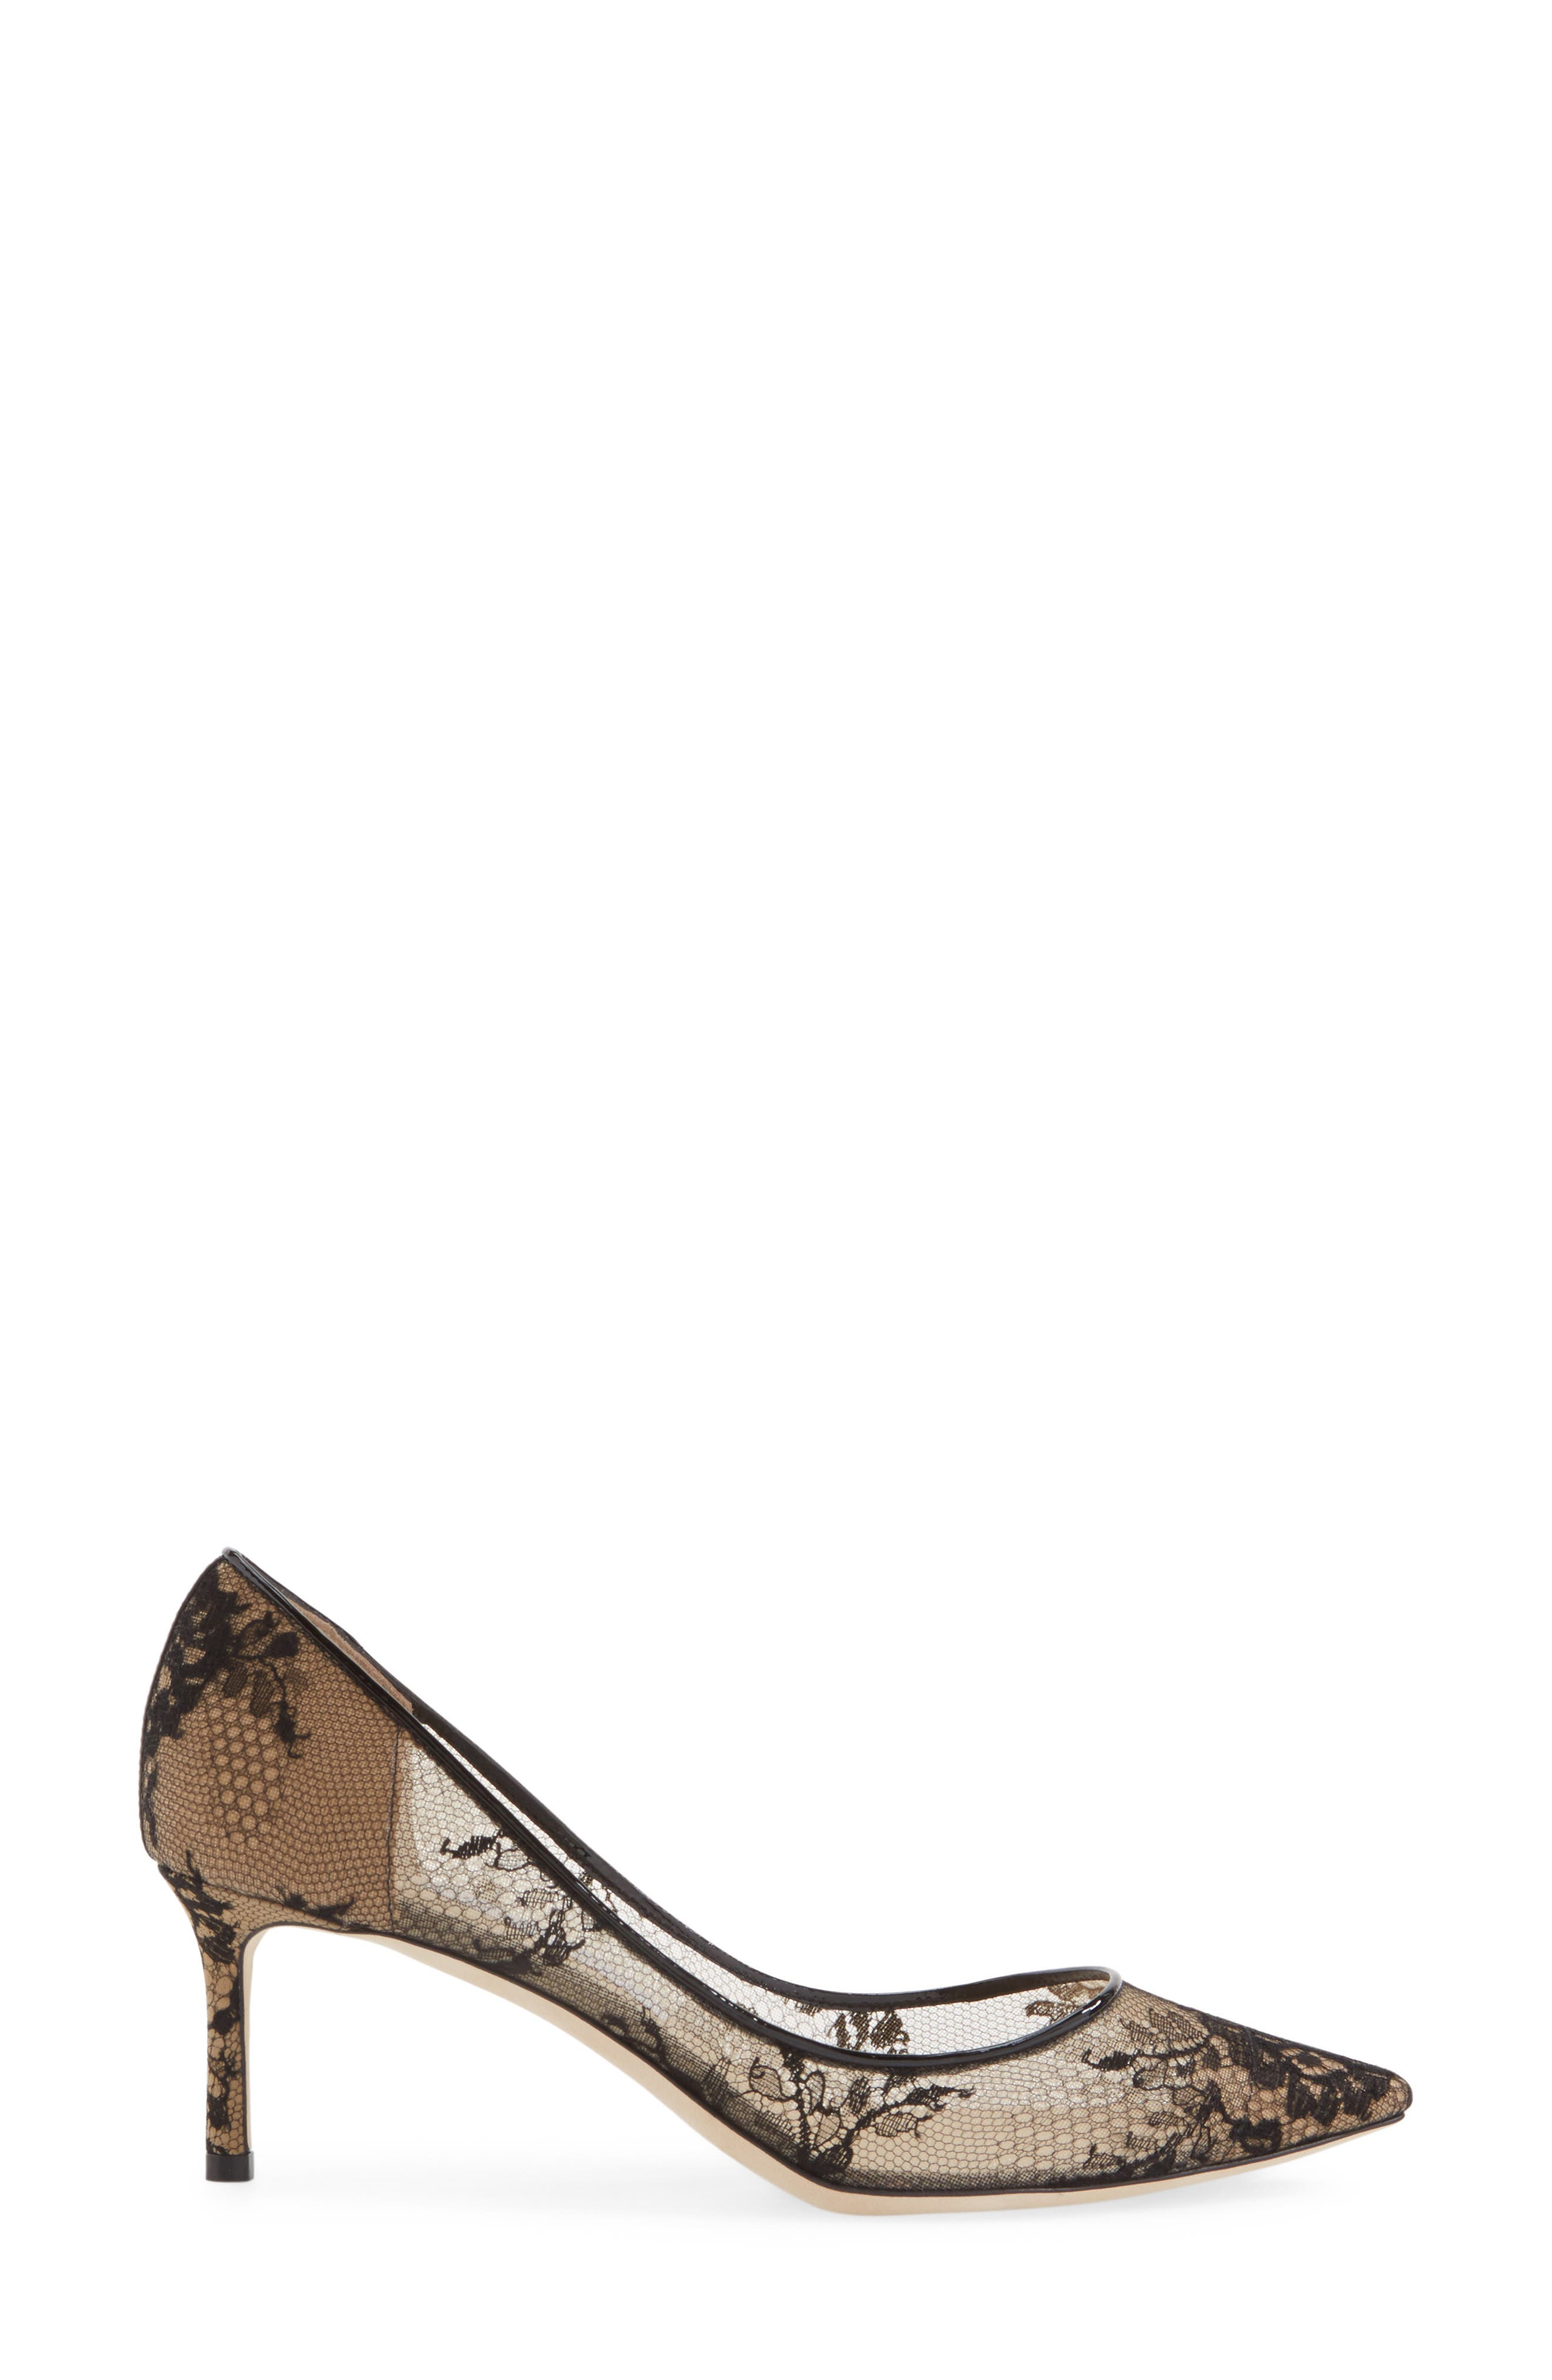 JIMMY CHOO,                             'Romy' Lace Pointy Toe Pump,                             Alternate thumbnail 5, color,                             002